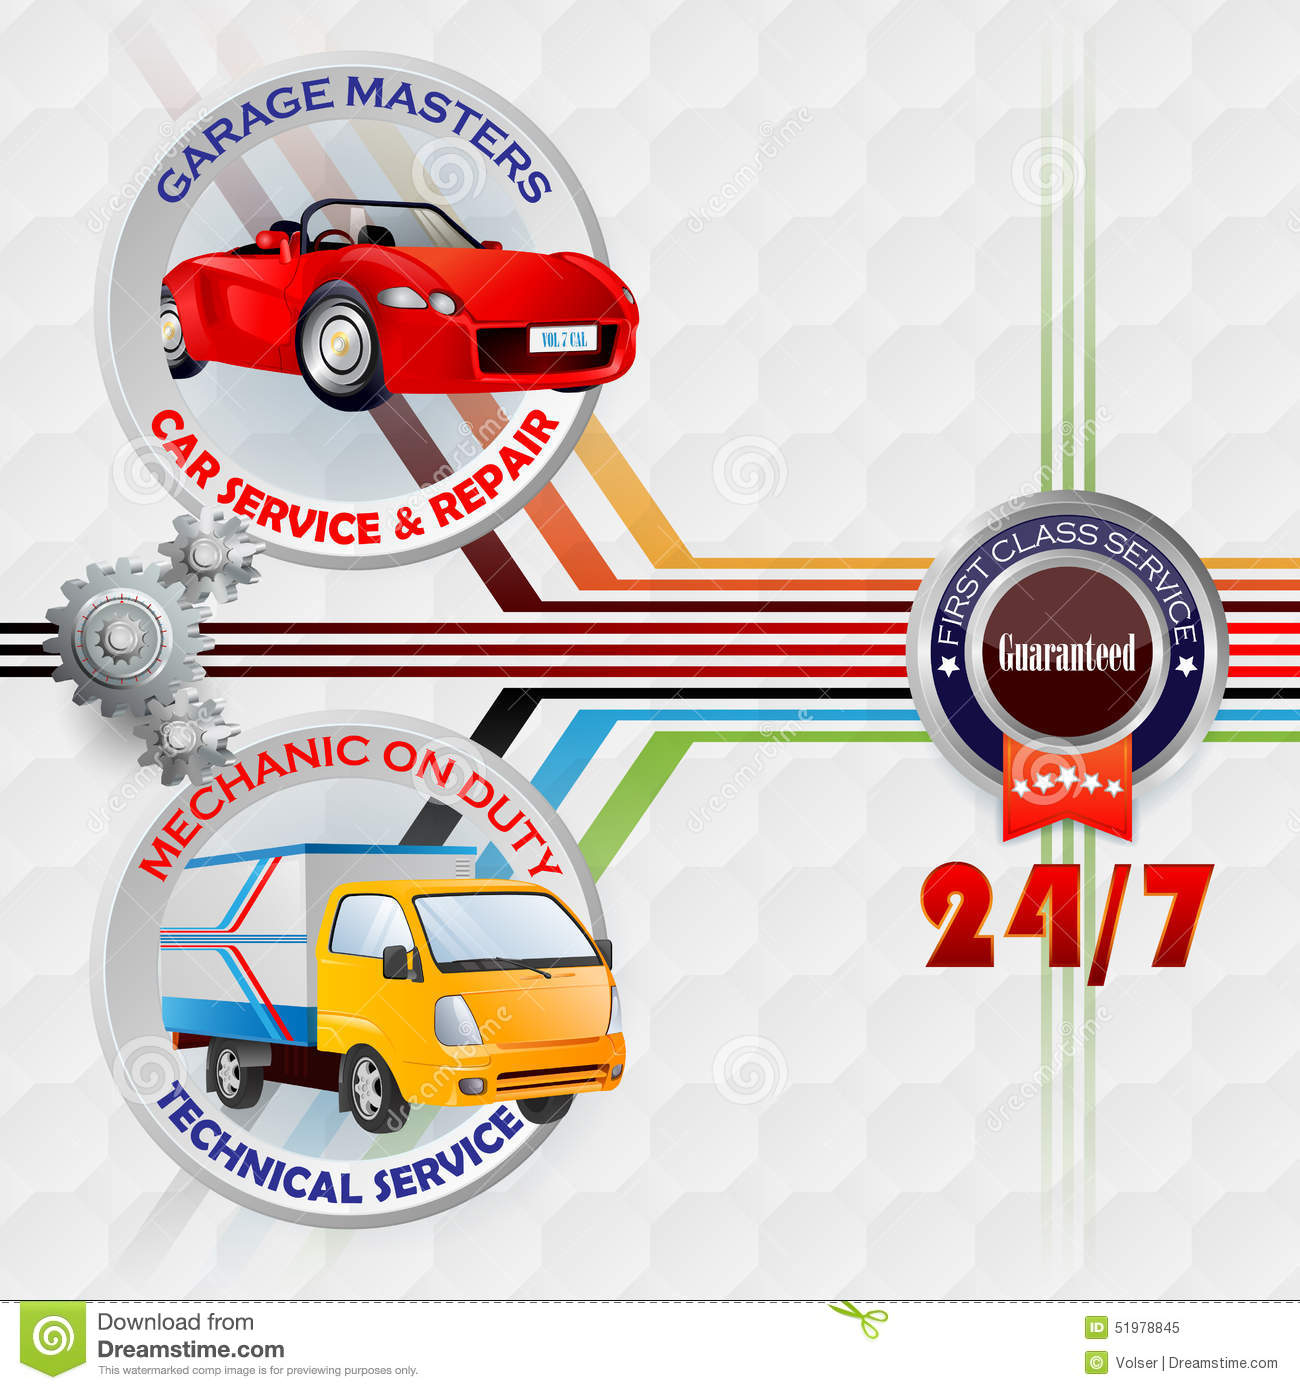 Modern design template for Garage, Car service and repair sign